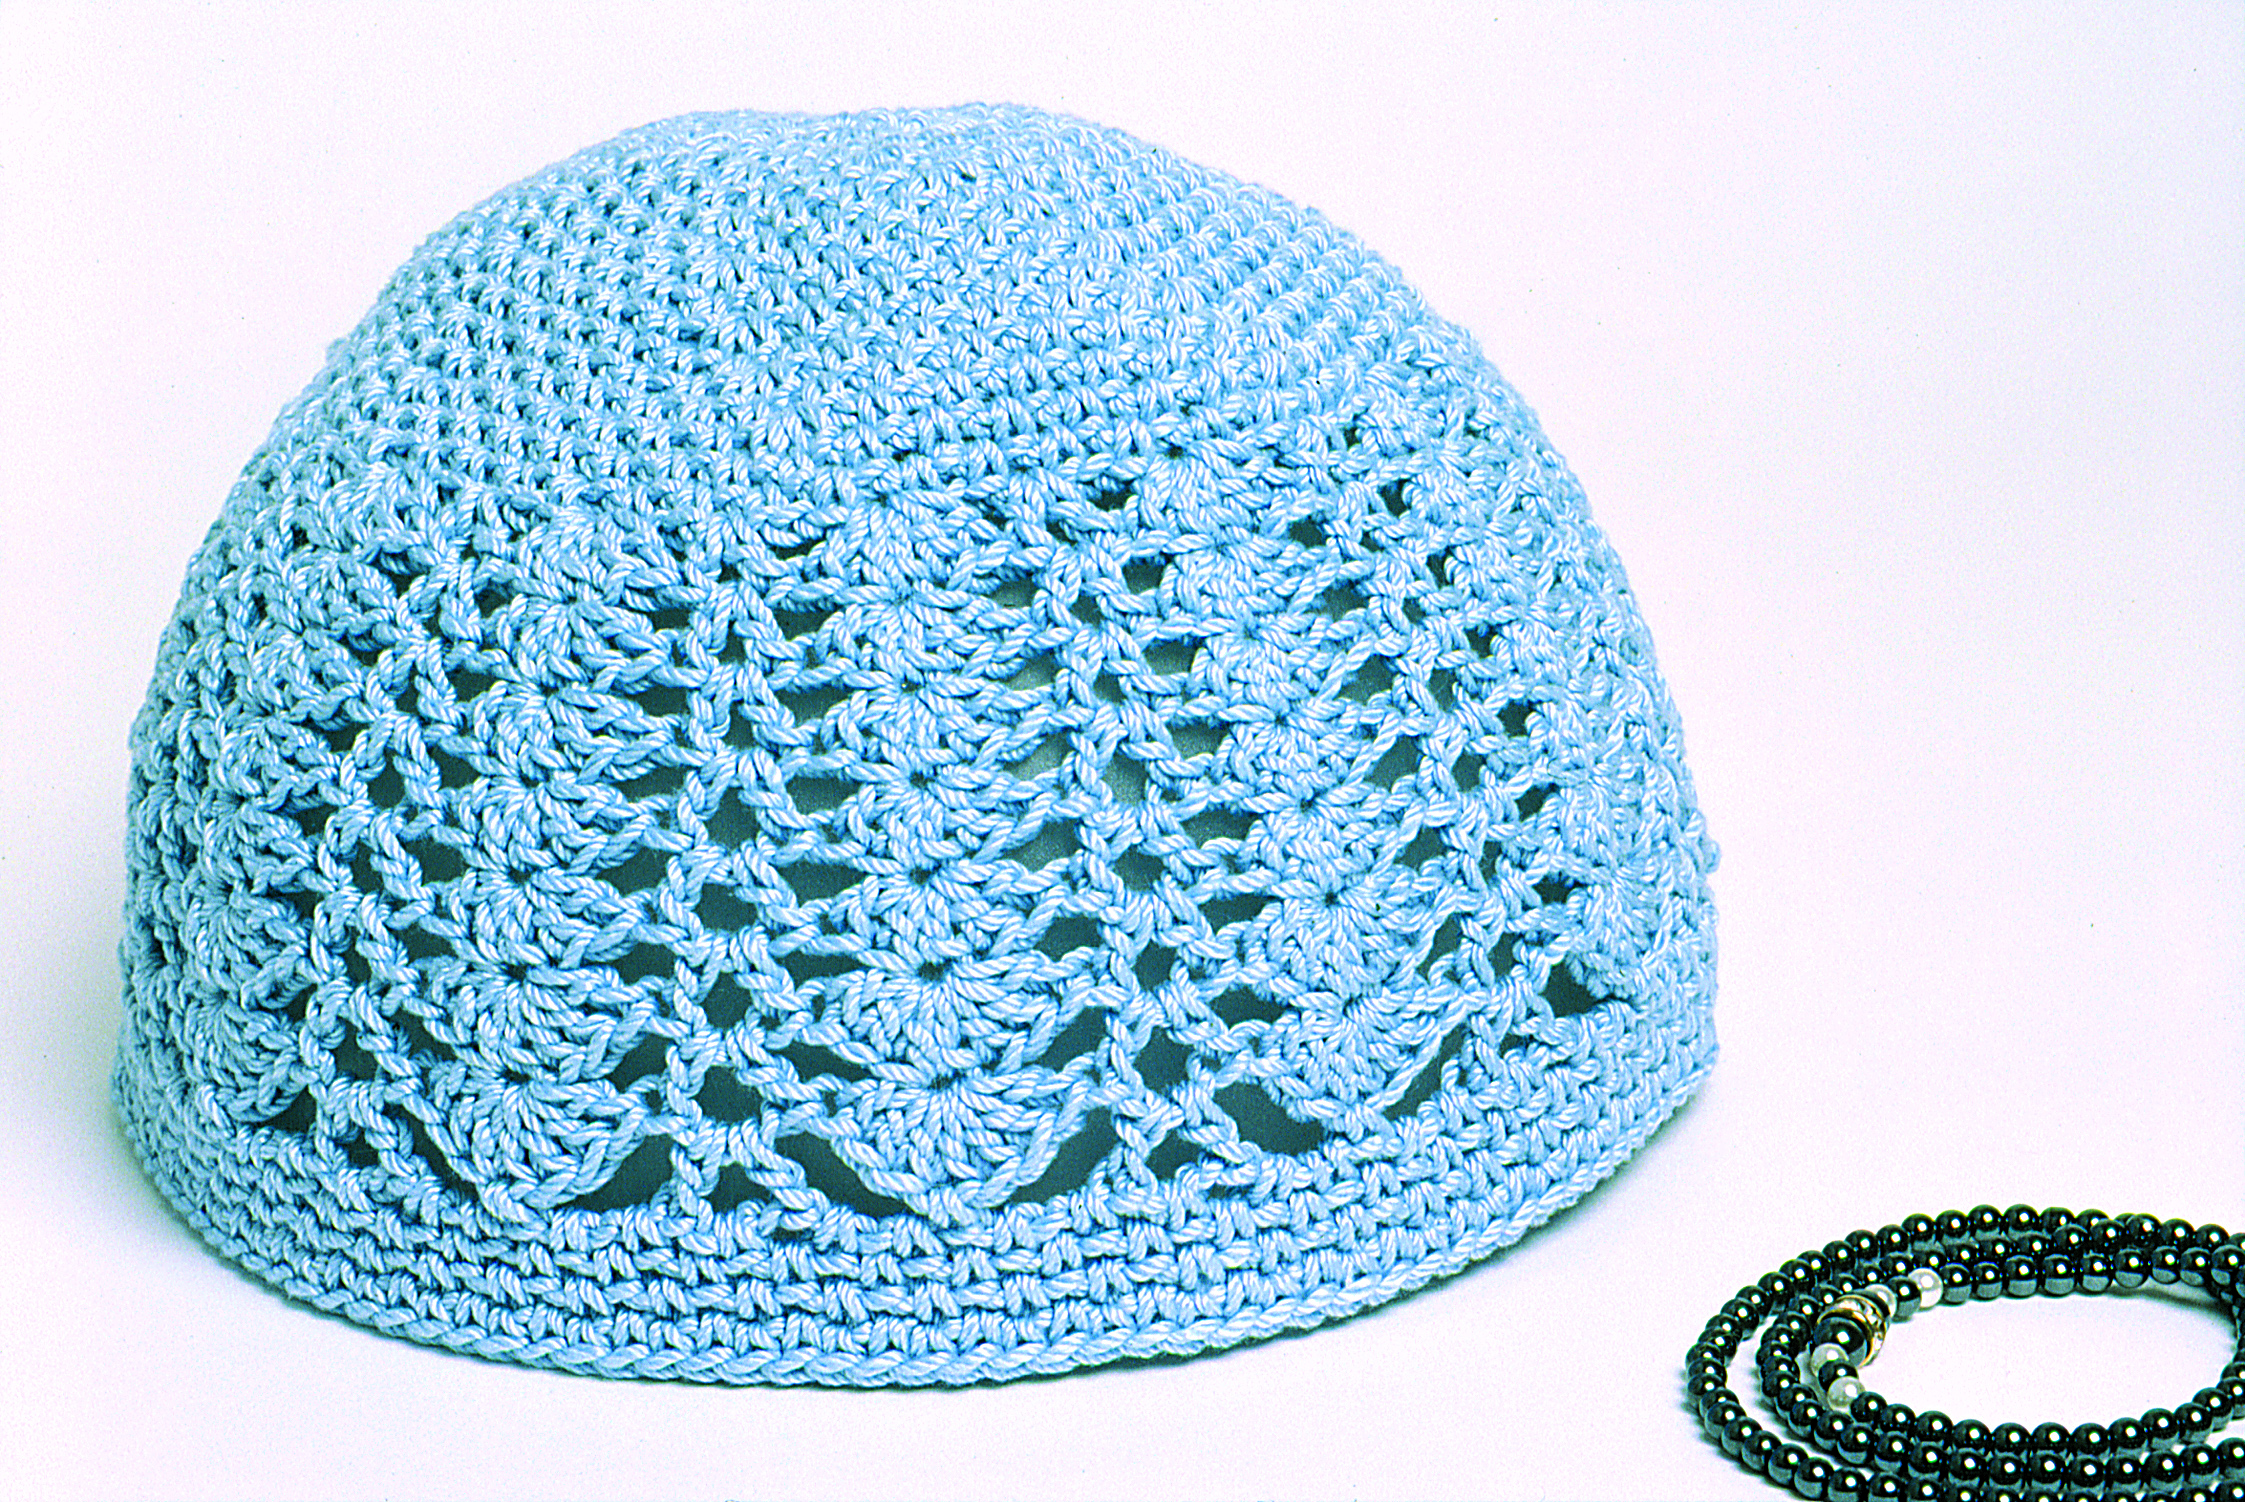 Free crochet patterns pottage publishing skullcap free crochet pattern bankloansurffo Choice Image